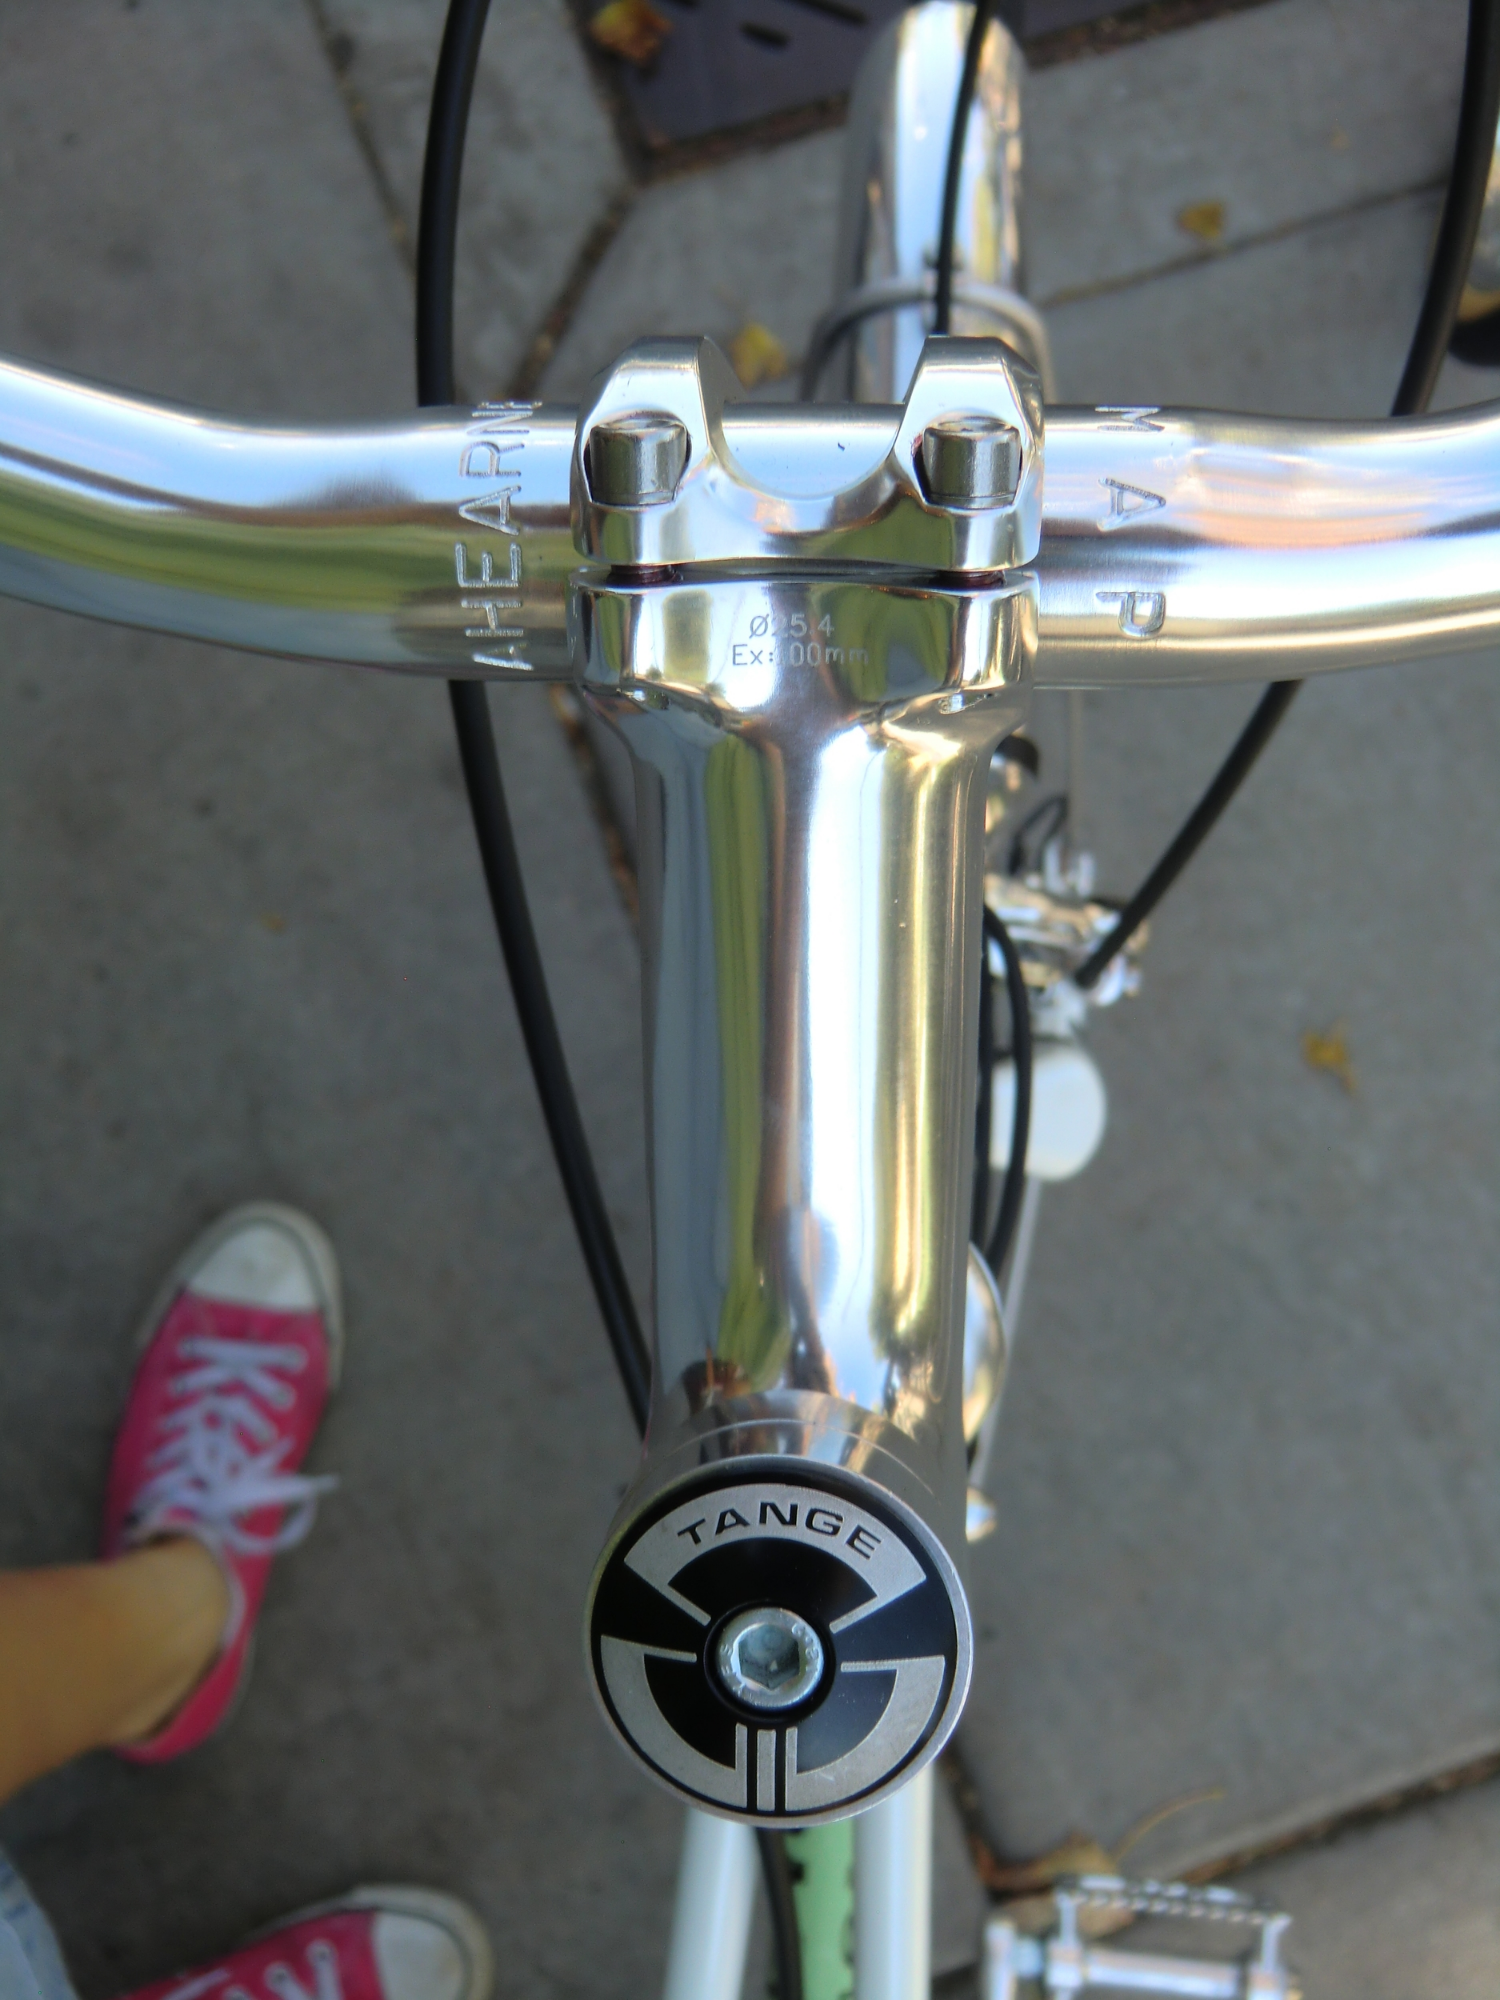 Tange head set. Don't skimp on your headsets, they hold your bike together over city streets.